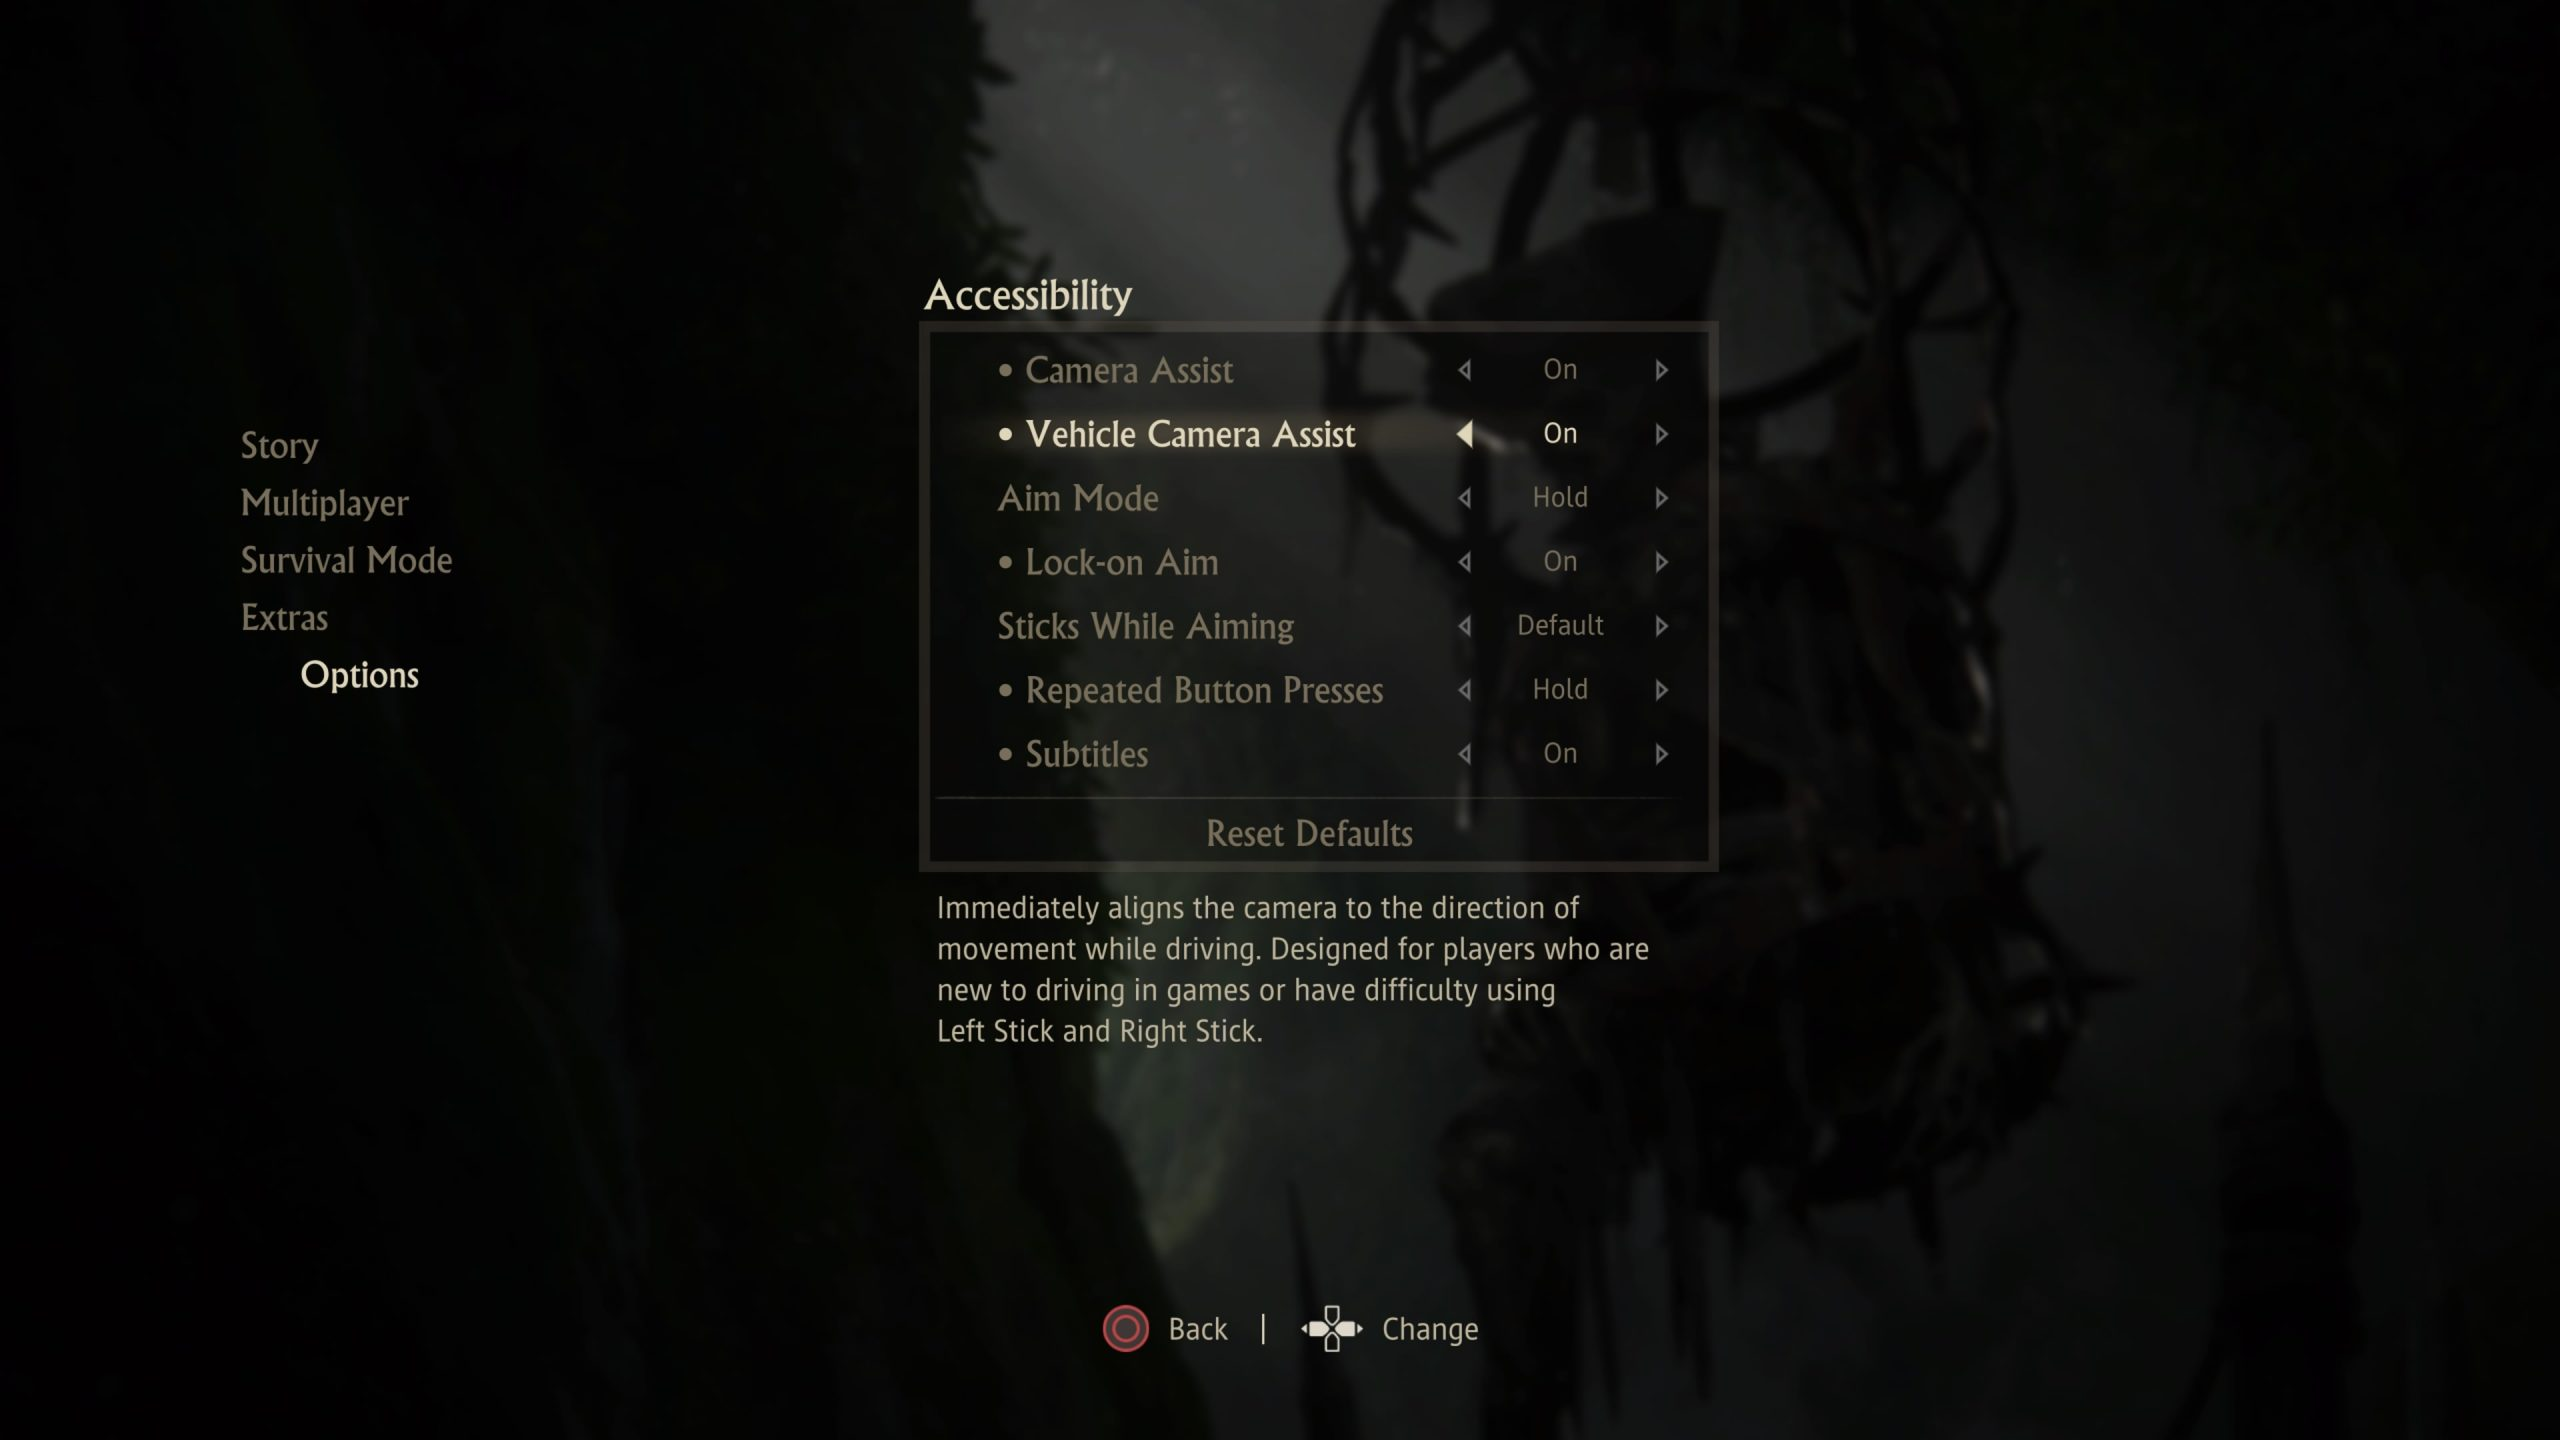 Screenshot of the list of settings found in the Accessibility sub-menu